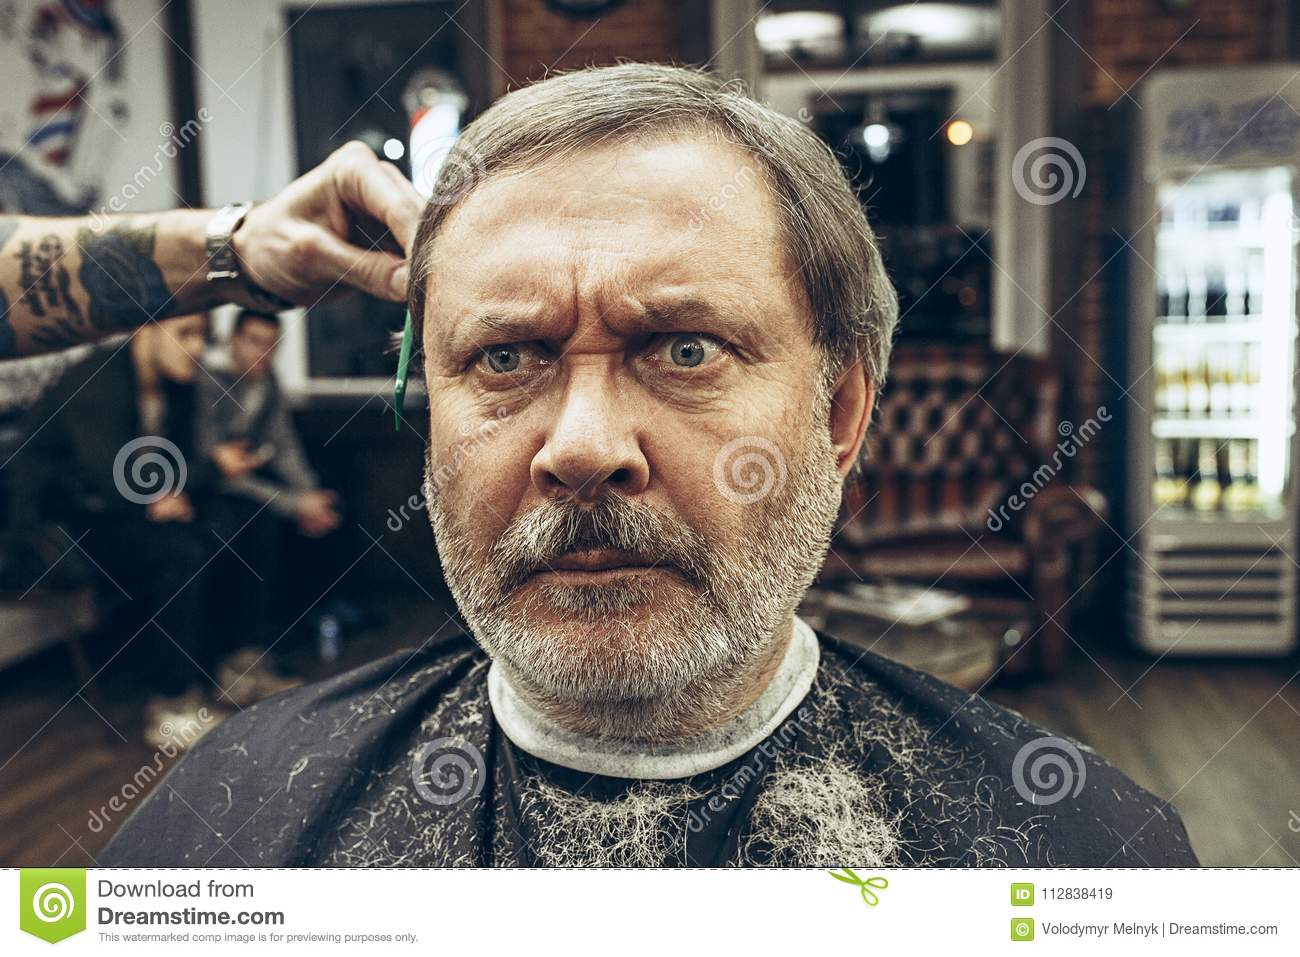 The Hands Of Barber Making Haircut Attractive Old Man In Barbershop